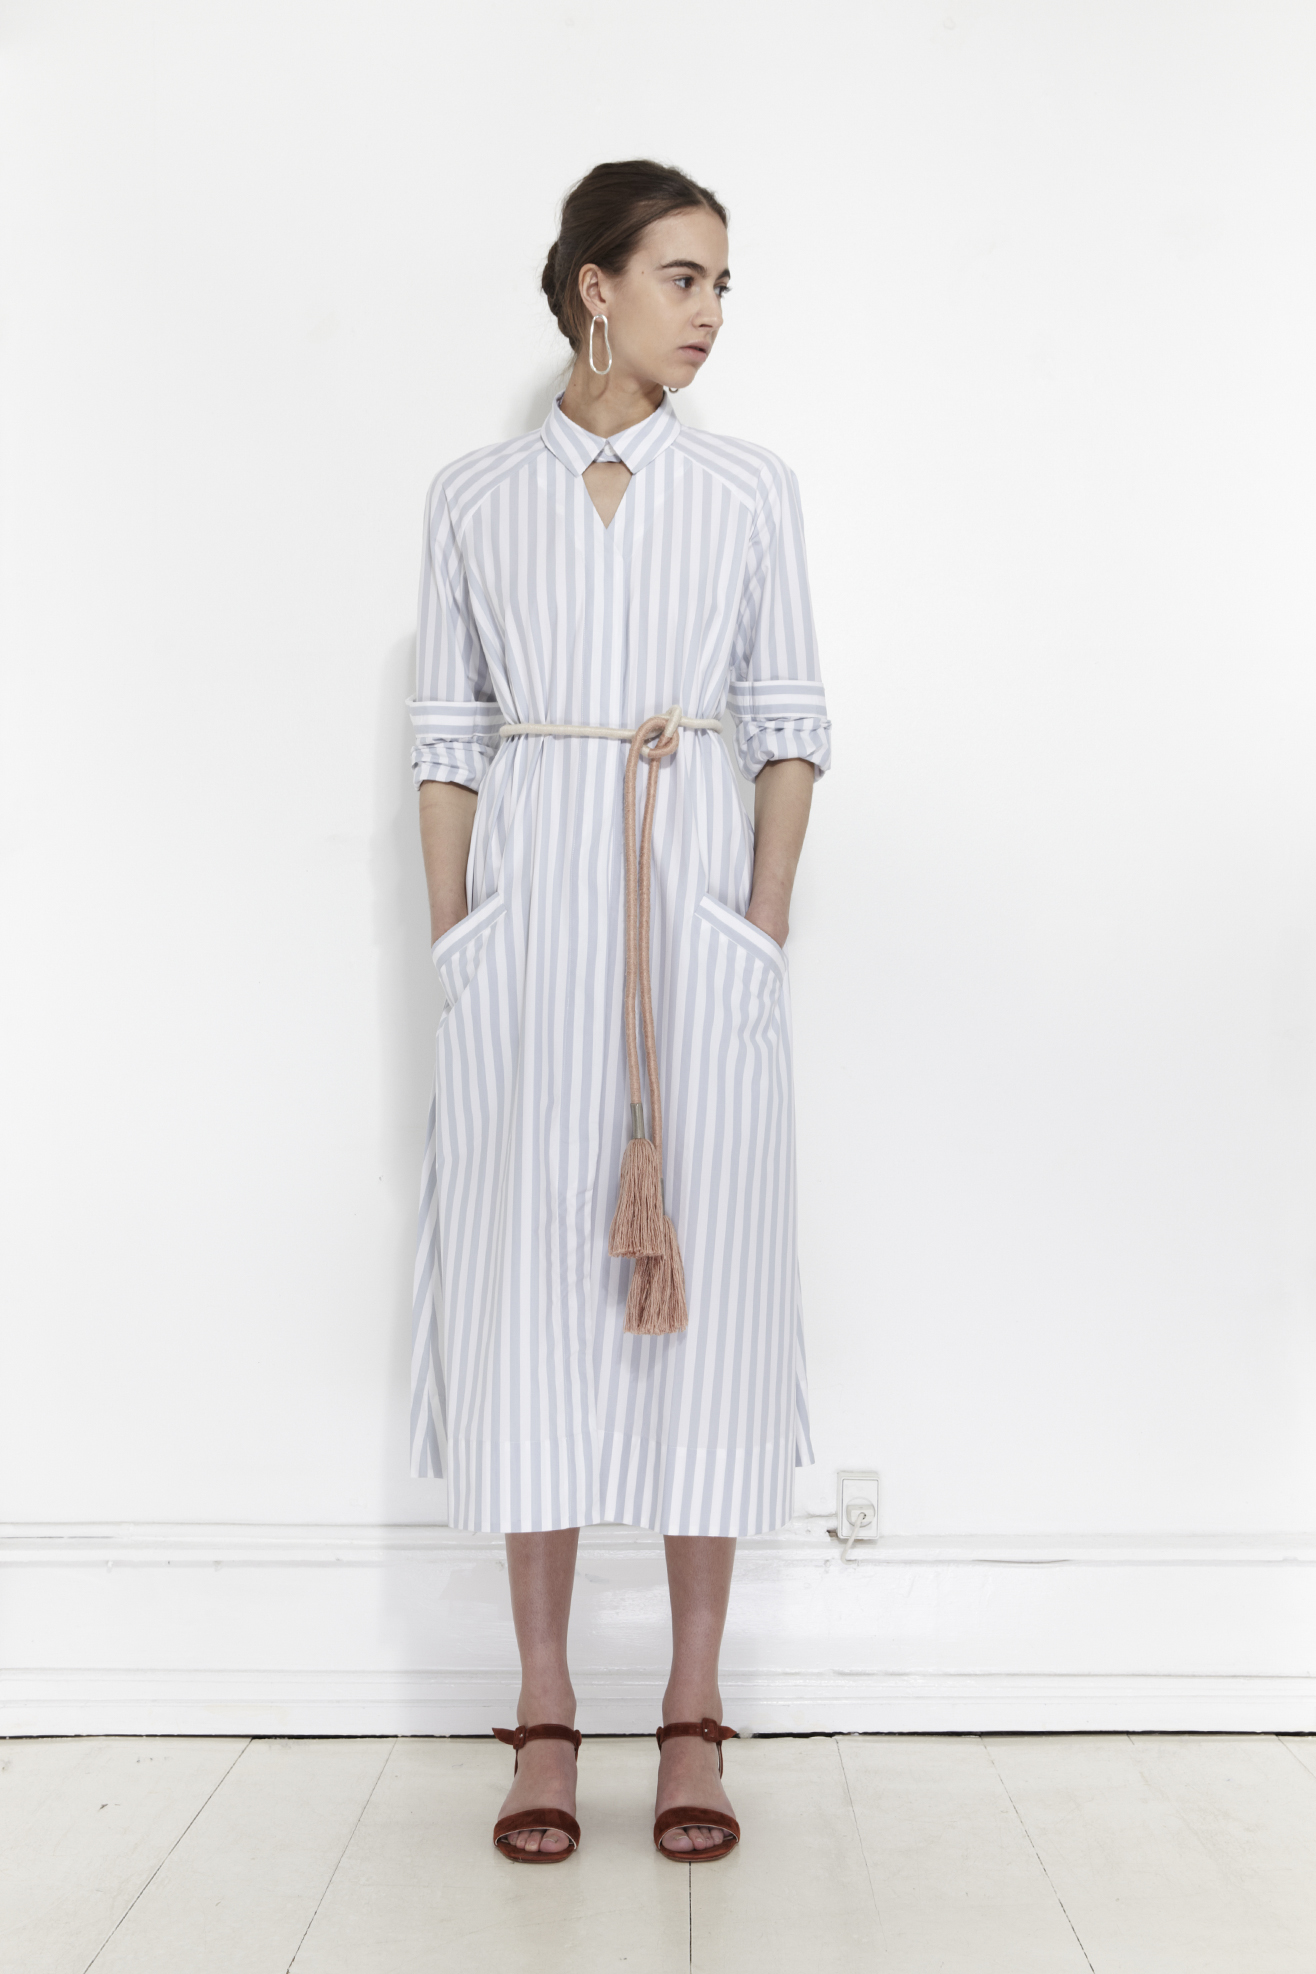 Summer dress by Mr. Larkin | Copenhagen based clothing label